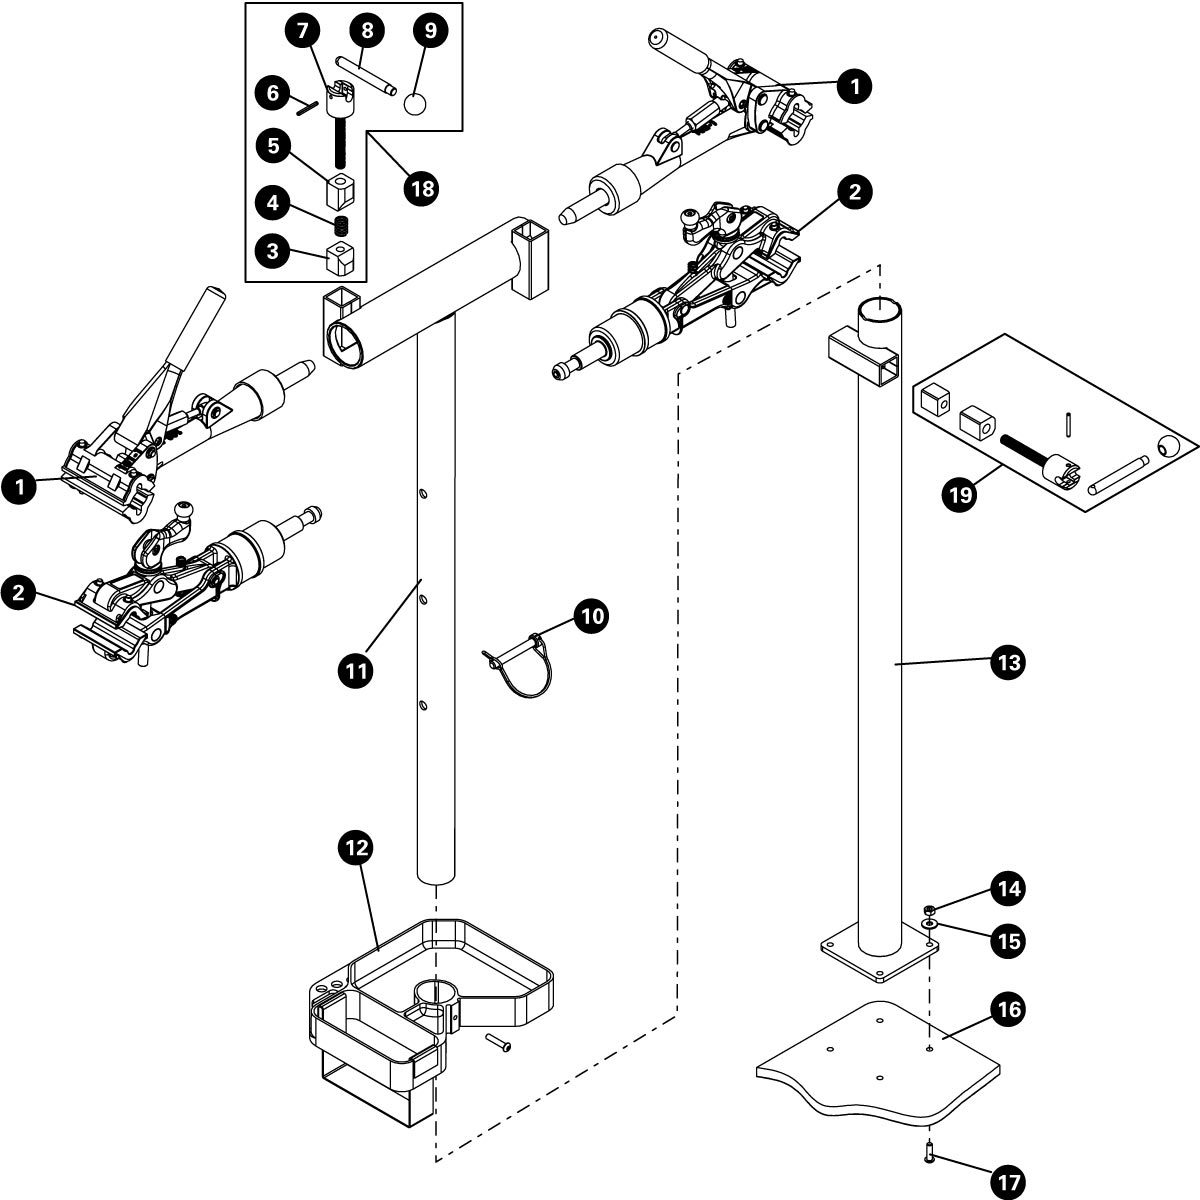 Parts diagram for PRS-2 OS-2 Deluxe Double Arm Repair Stand, click to enlarge